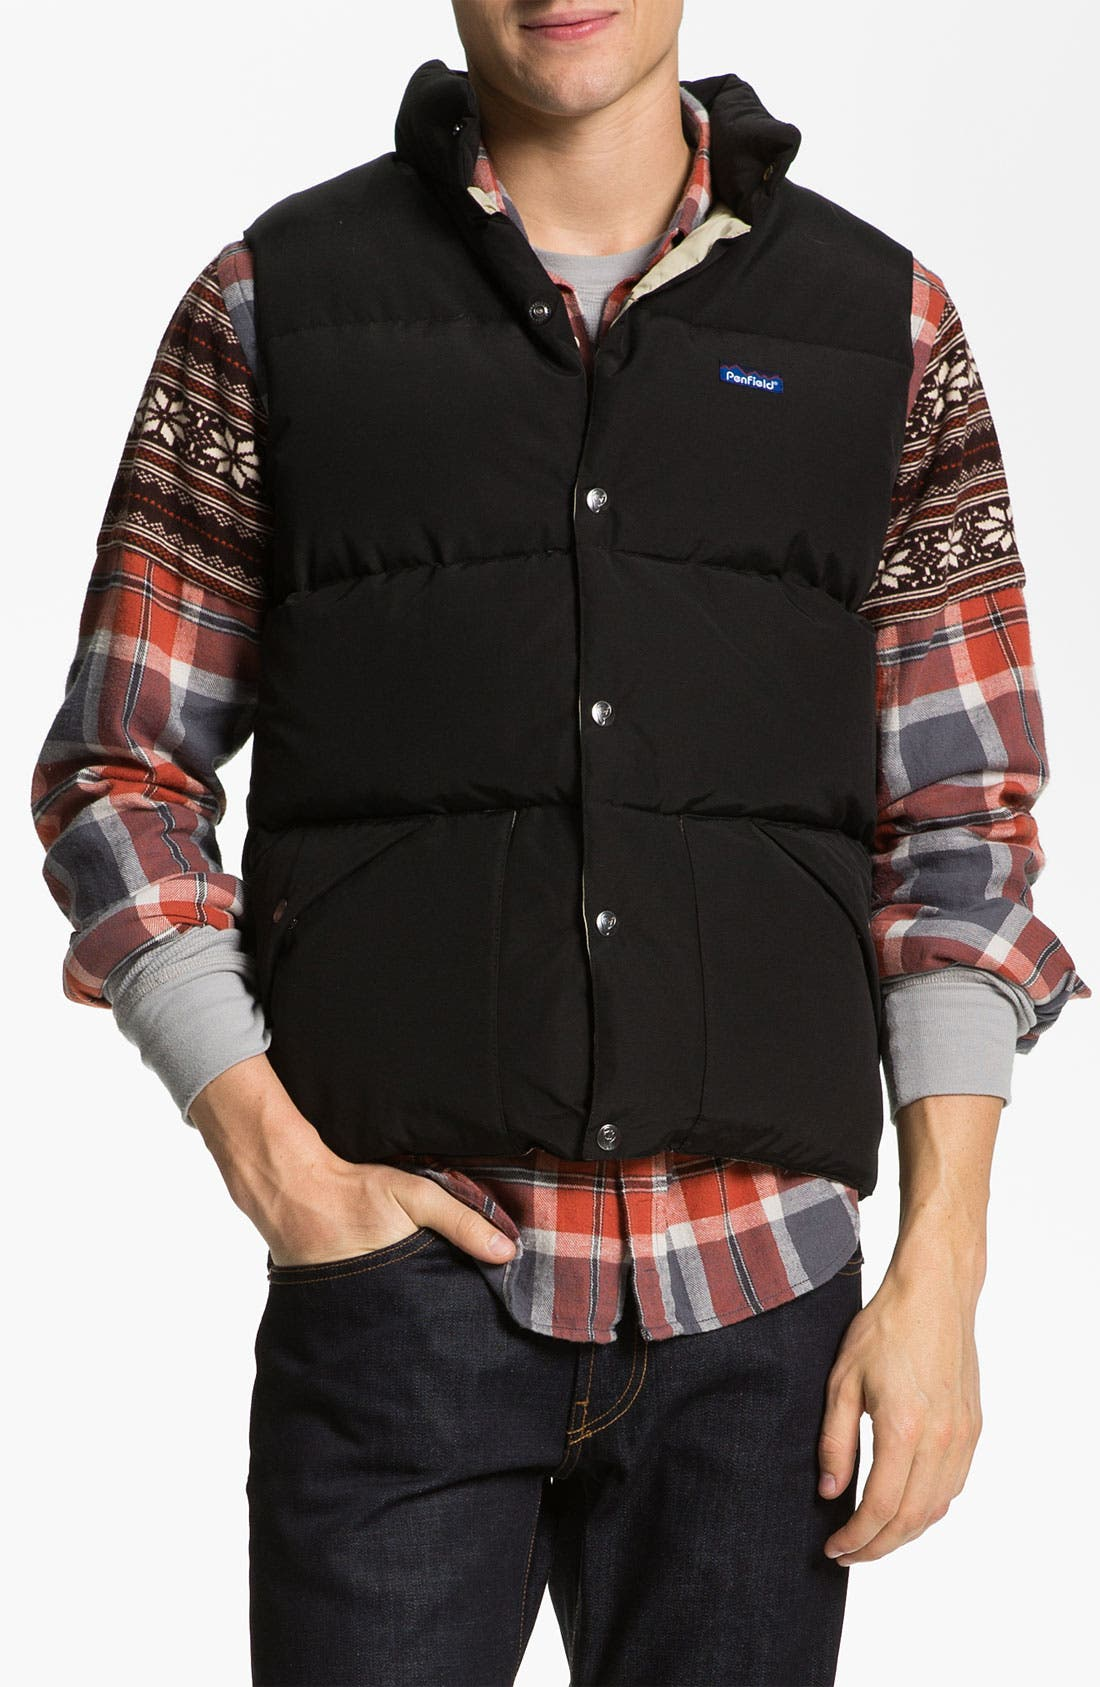 Alternate Image 1 Selected - Penfield 'Outback' Down Vest